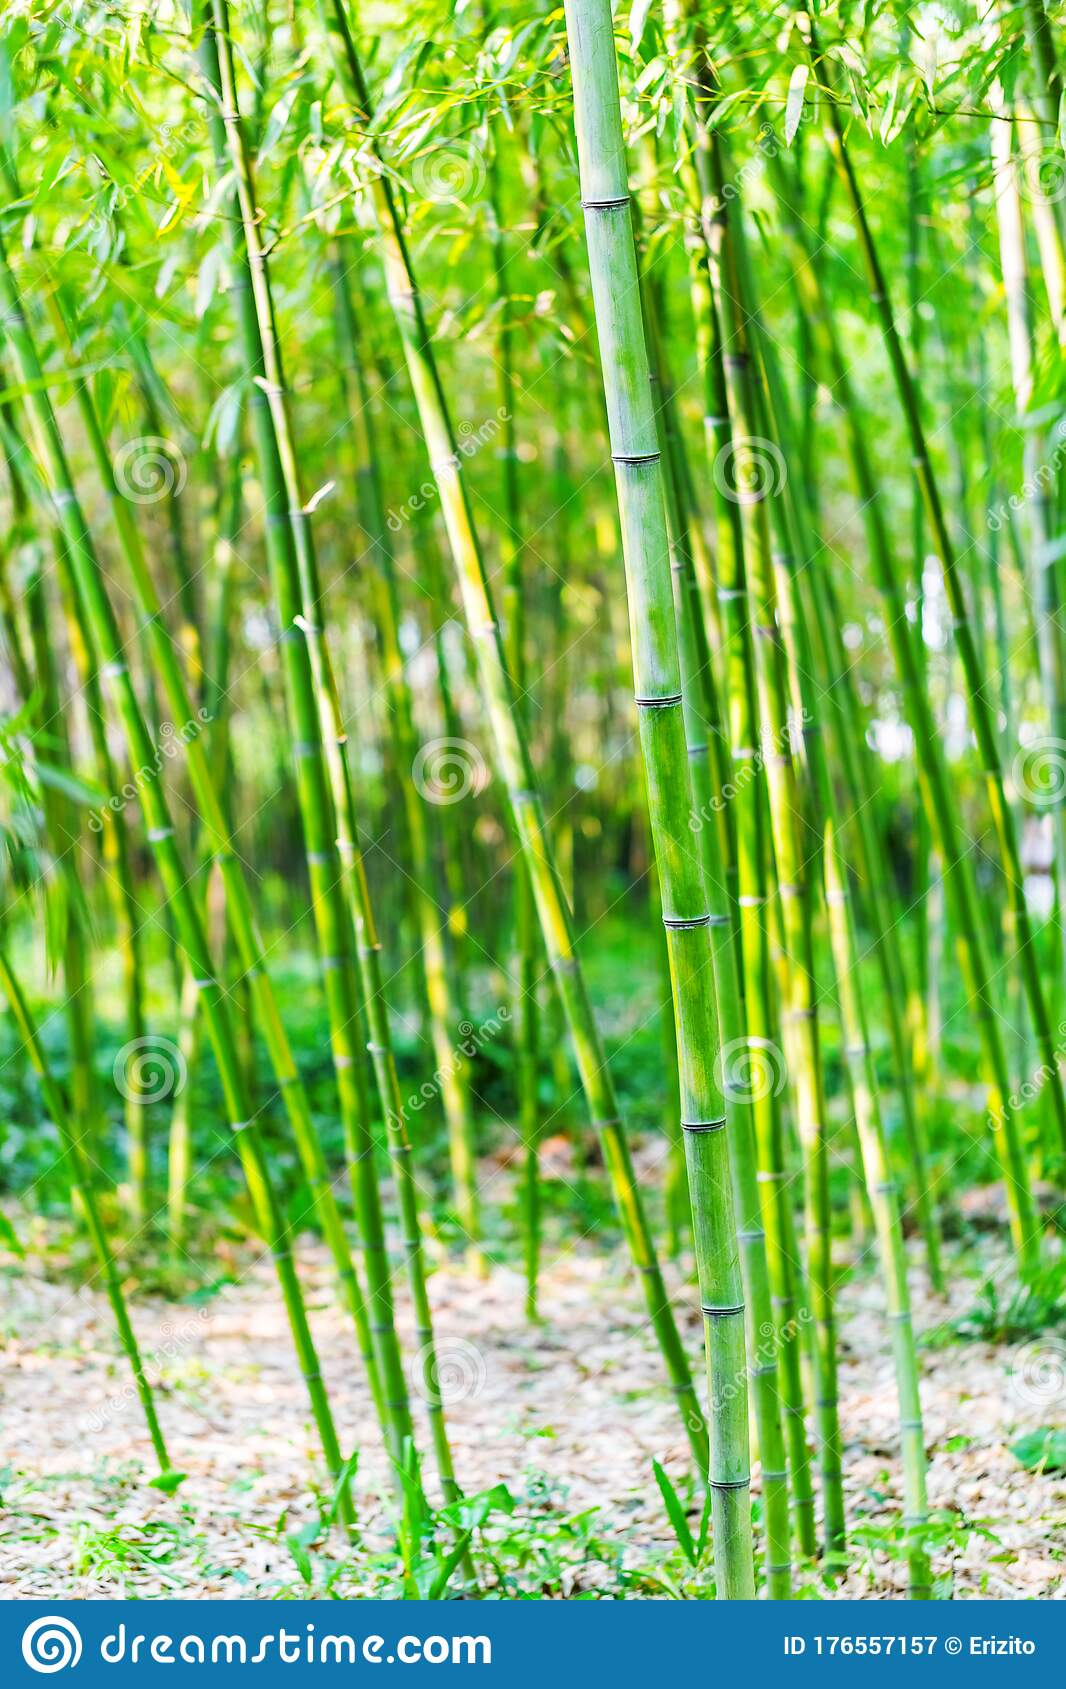 Bright Green Bamboo Stems And Leaves Background Stock Image Image Of Organic Jungle 176557157